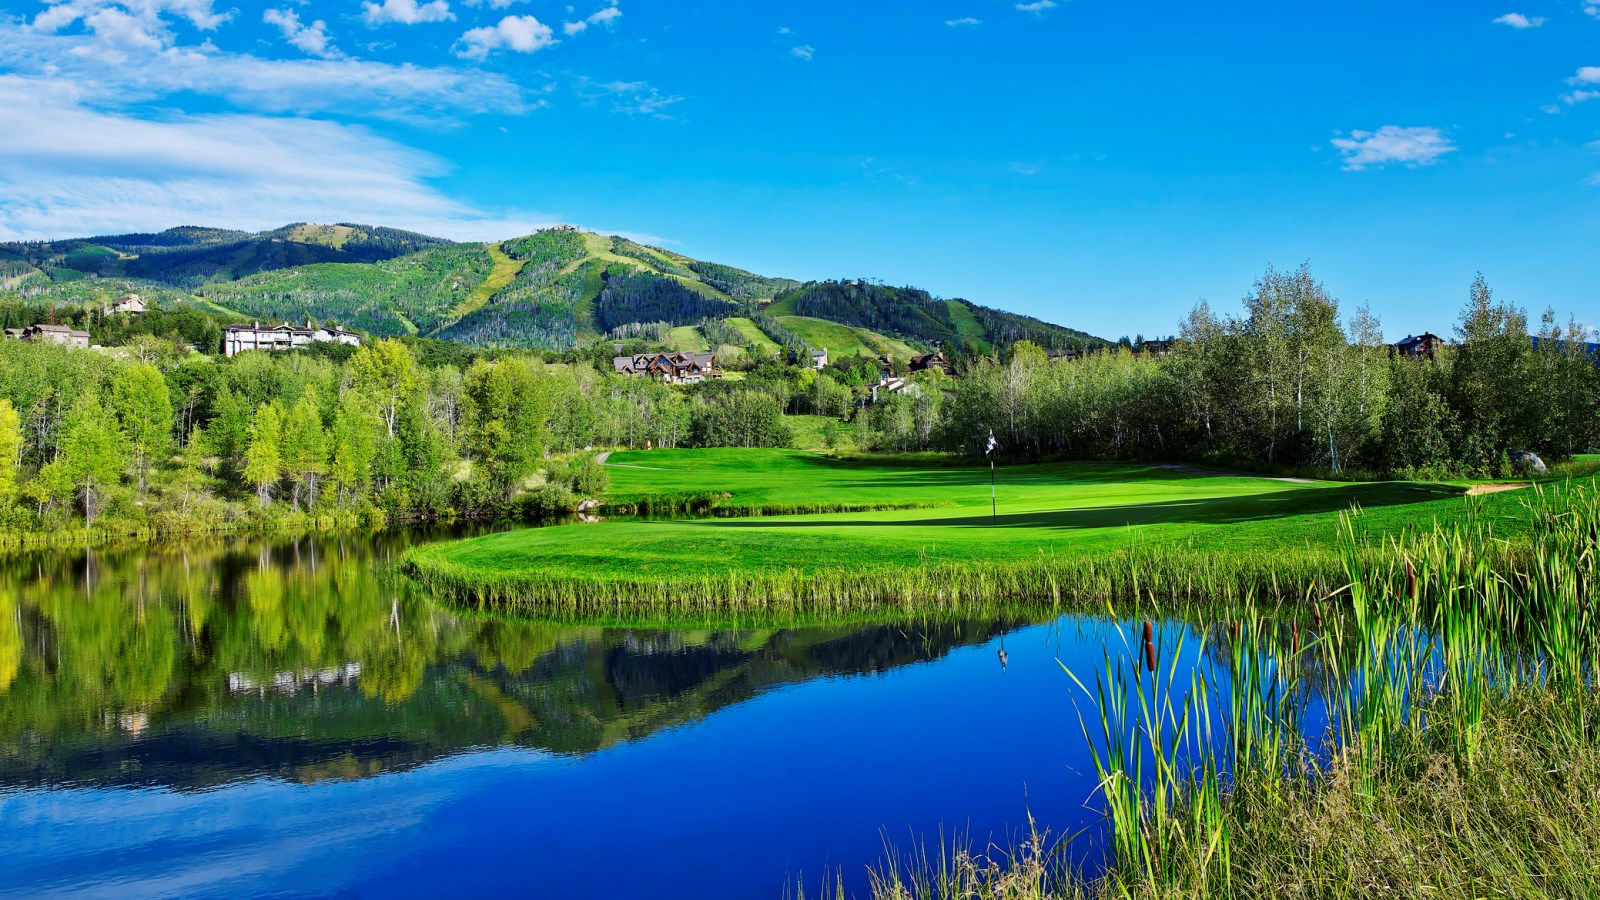 Steamboat Springs Restaurants - Fish Creek Grille